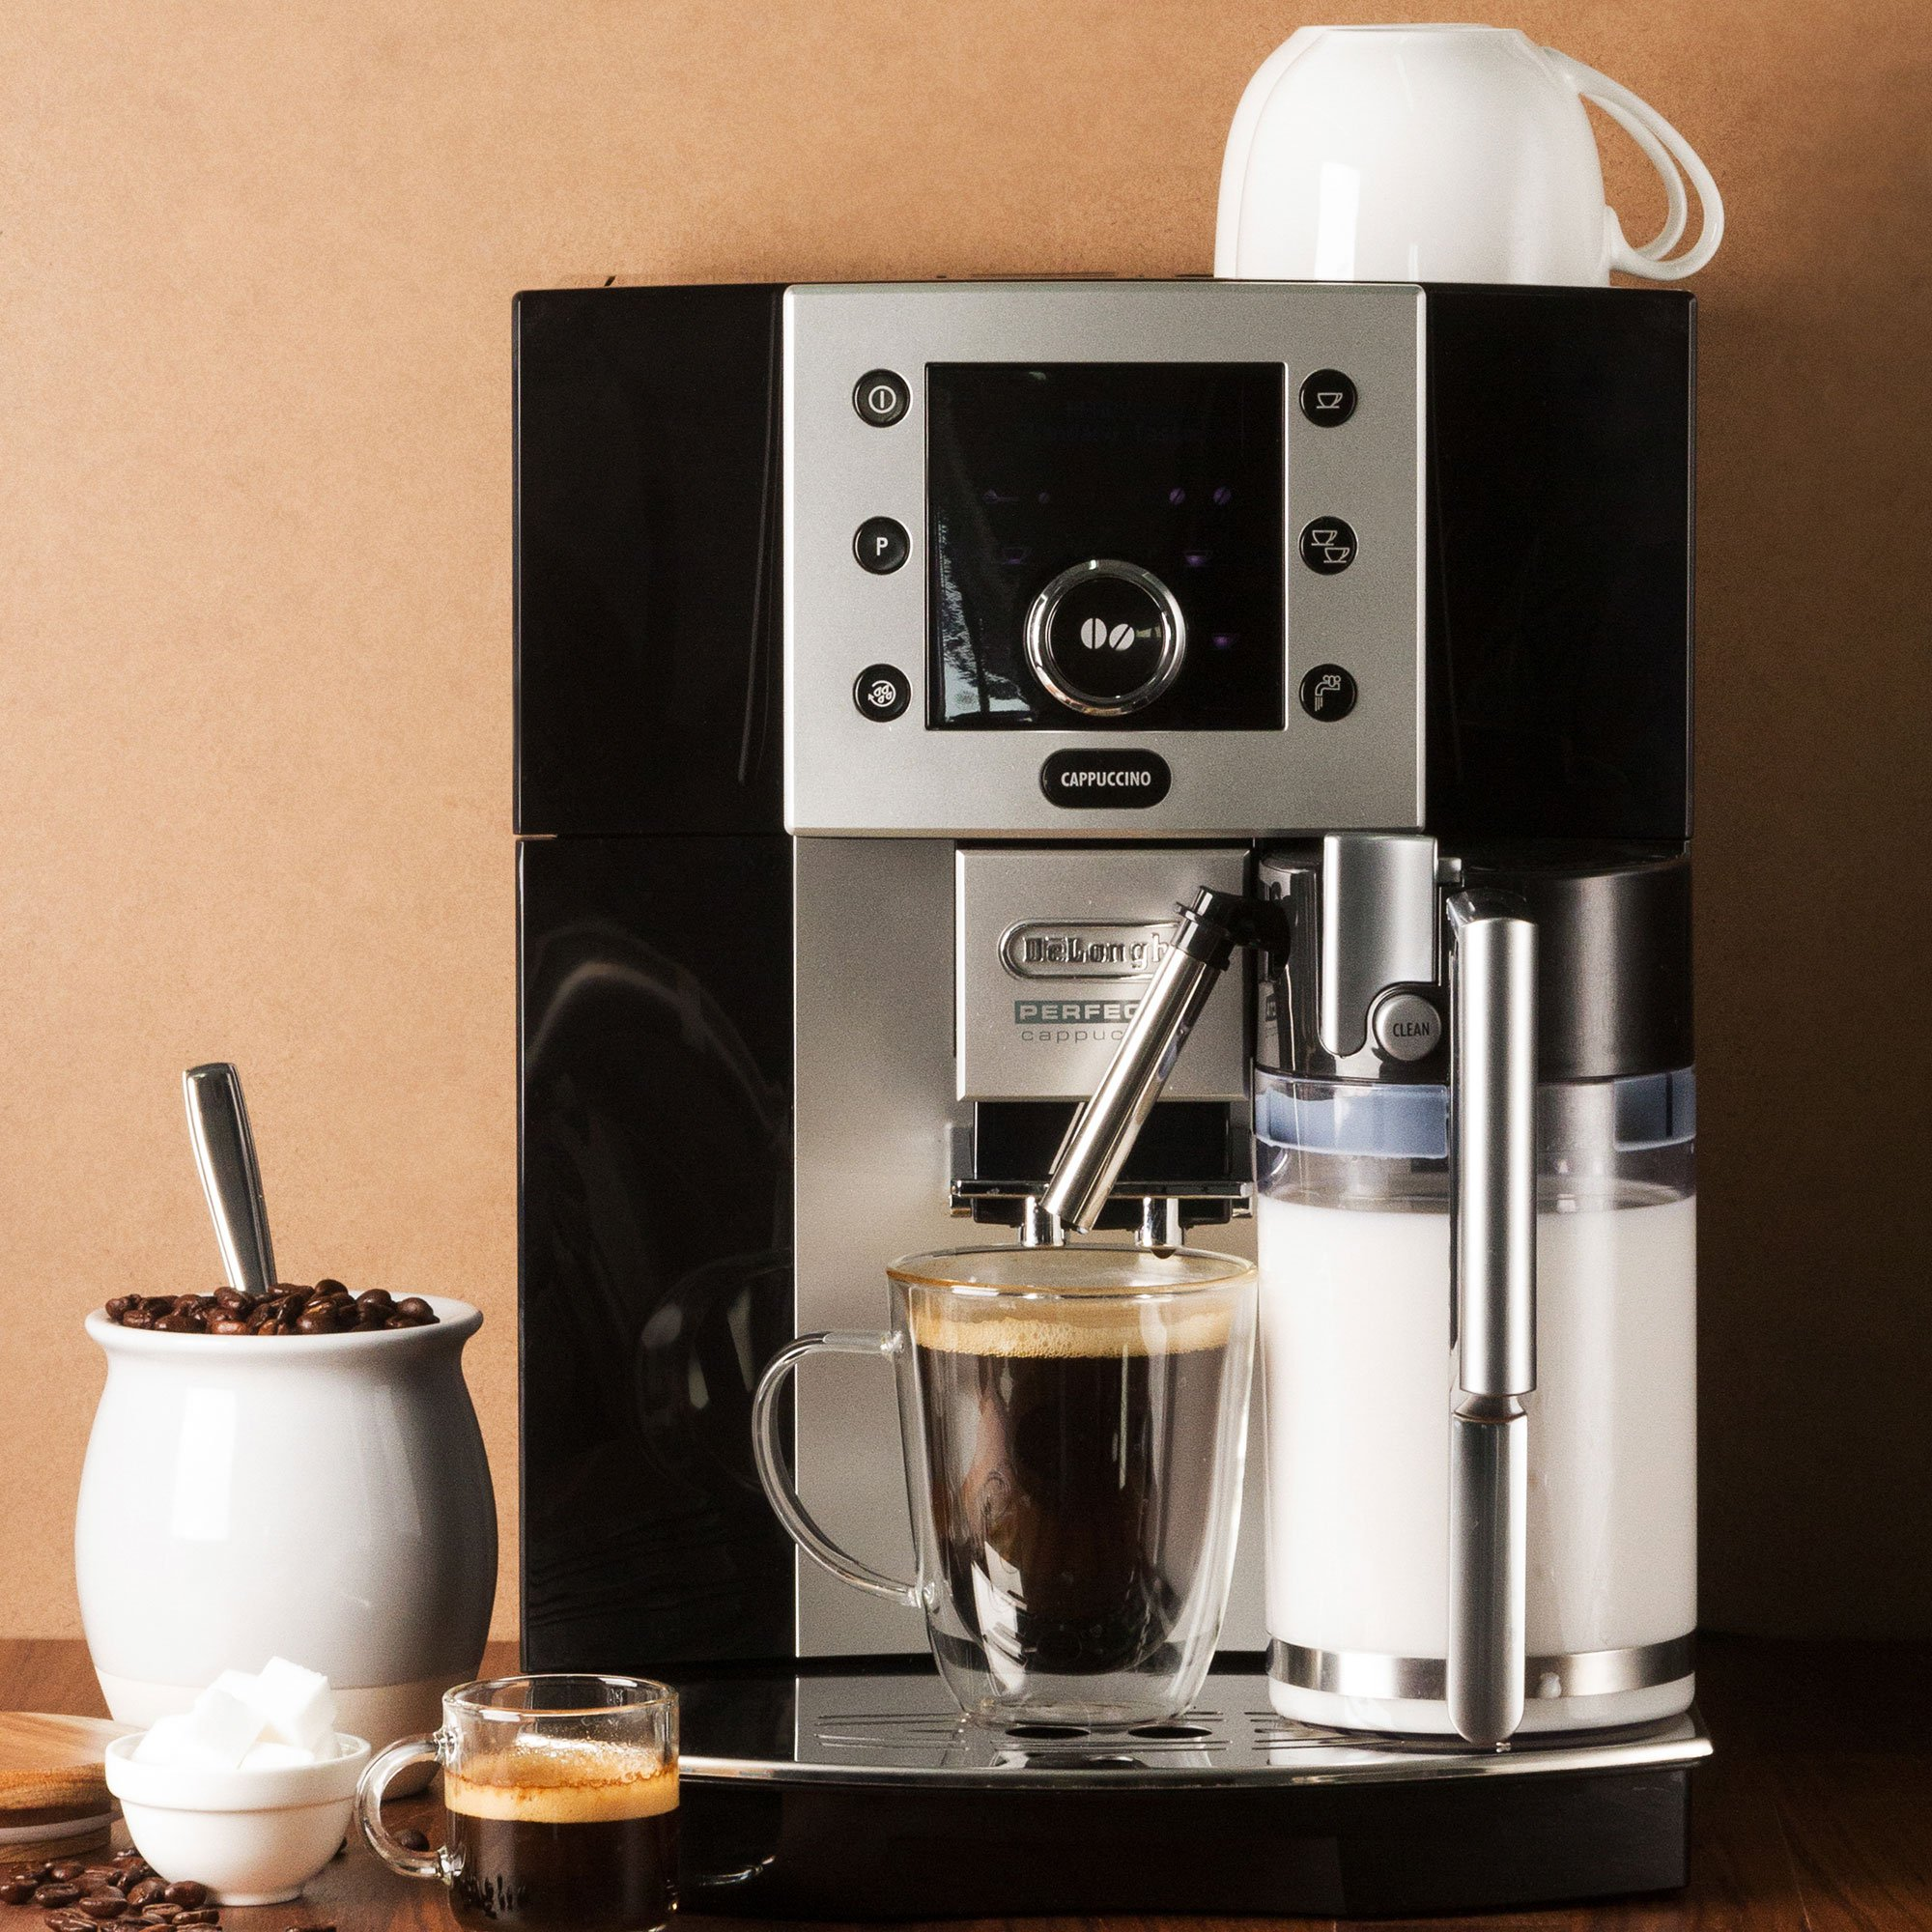 Delonghi Perfecta Espresso and Cappuccino Machine in Black